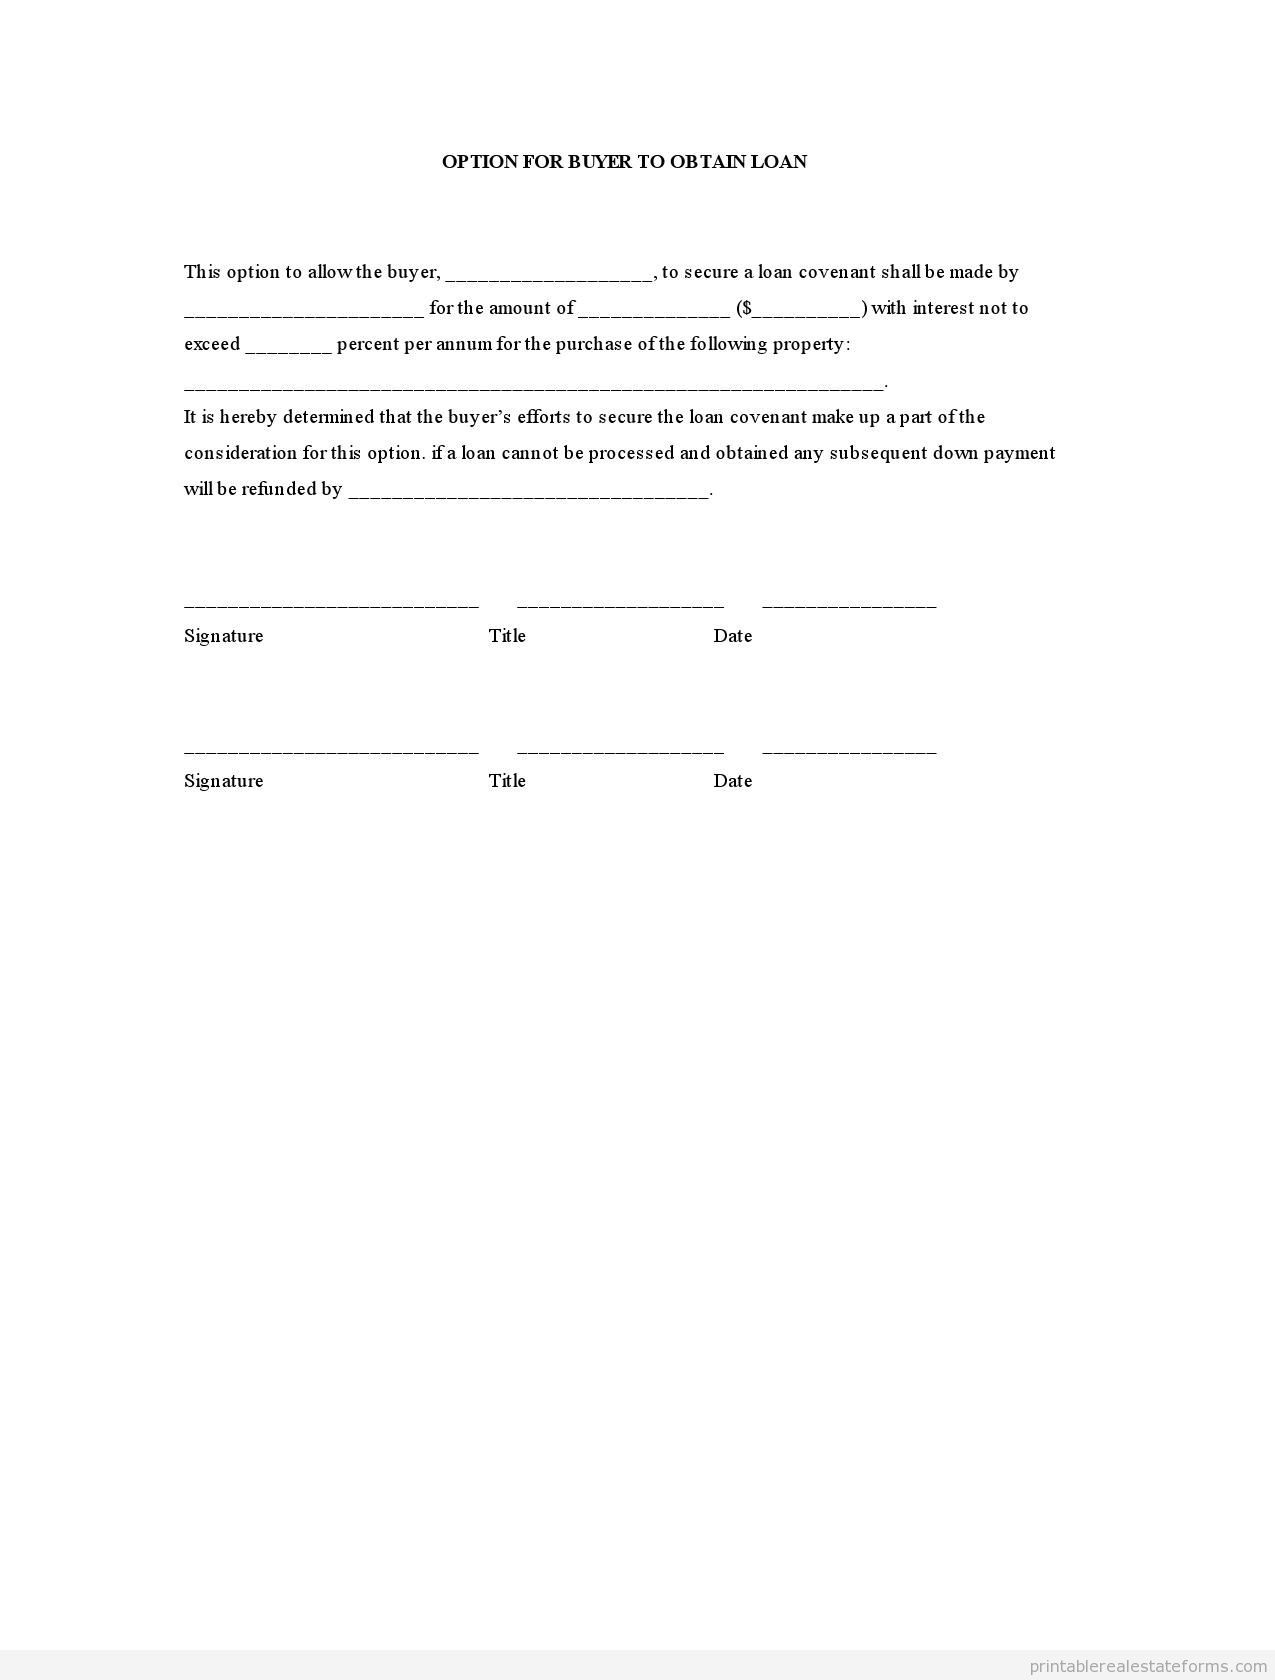 Loan Forms Template Sample Printable Option For Buyer To Obtain Loan Form  Printable .